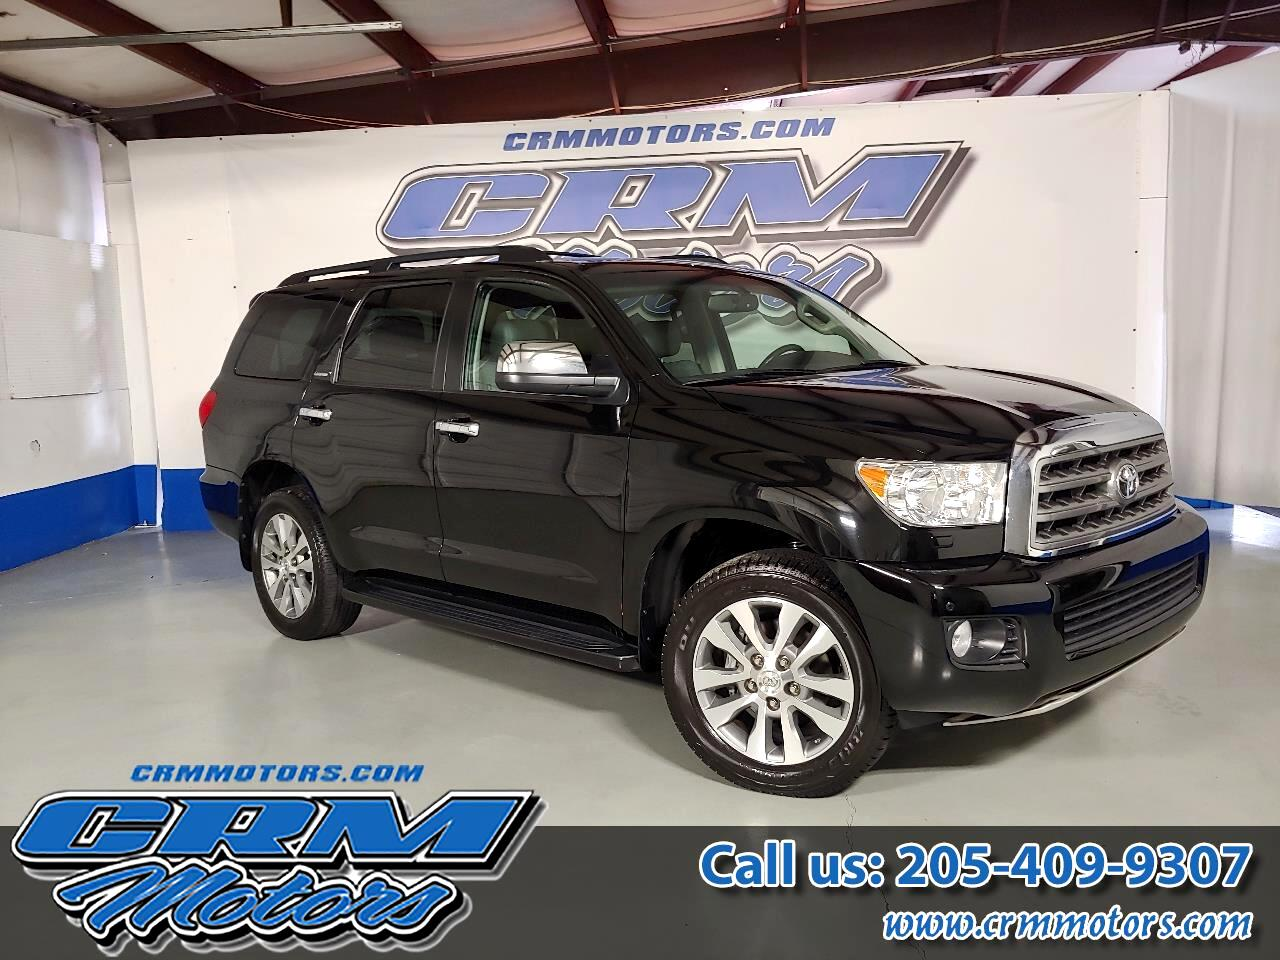 2016 Toyota Sequoia 4WD LIMITED, LEATHER, SUNROOF, CAPT CHAIRS, & MORE